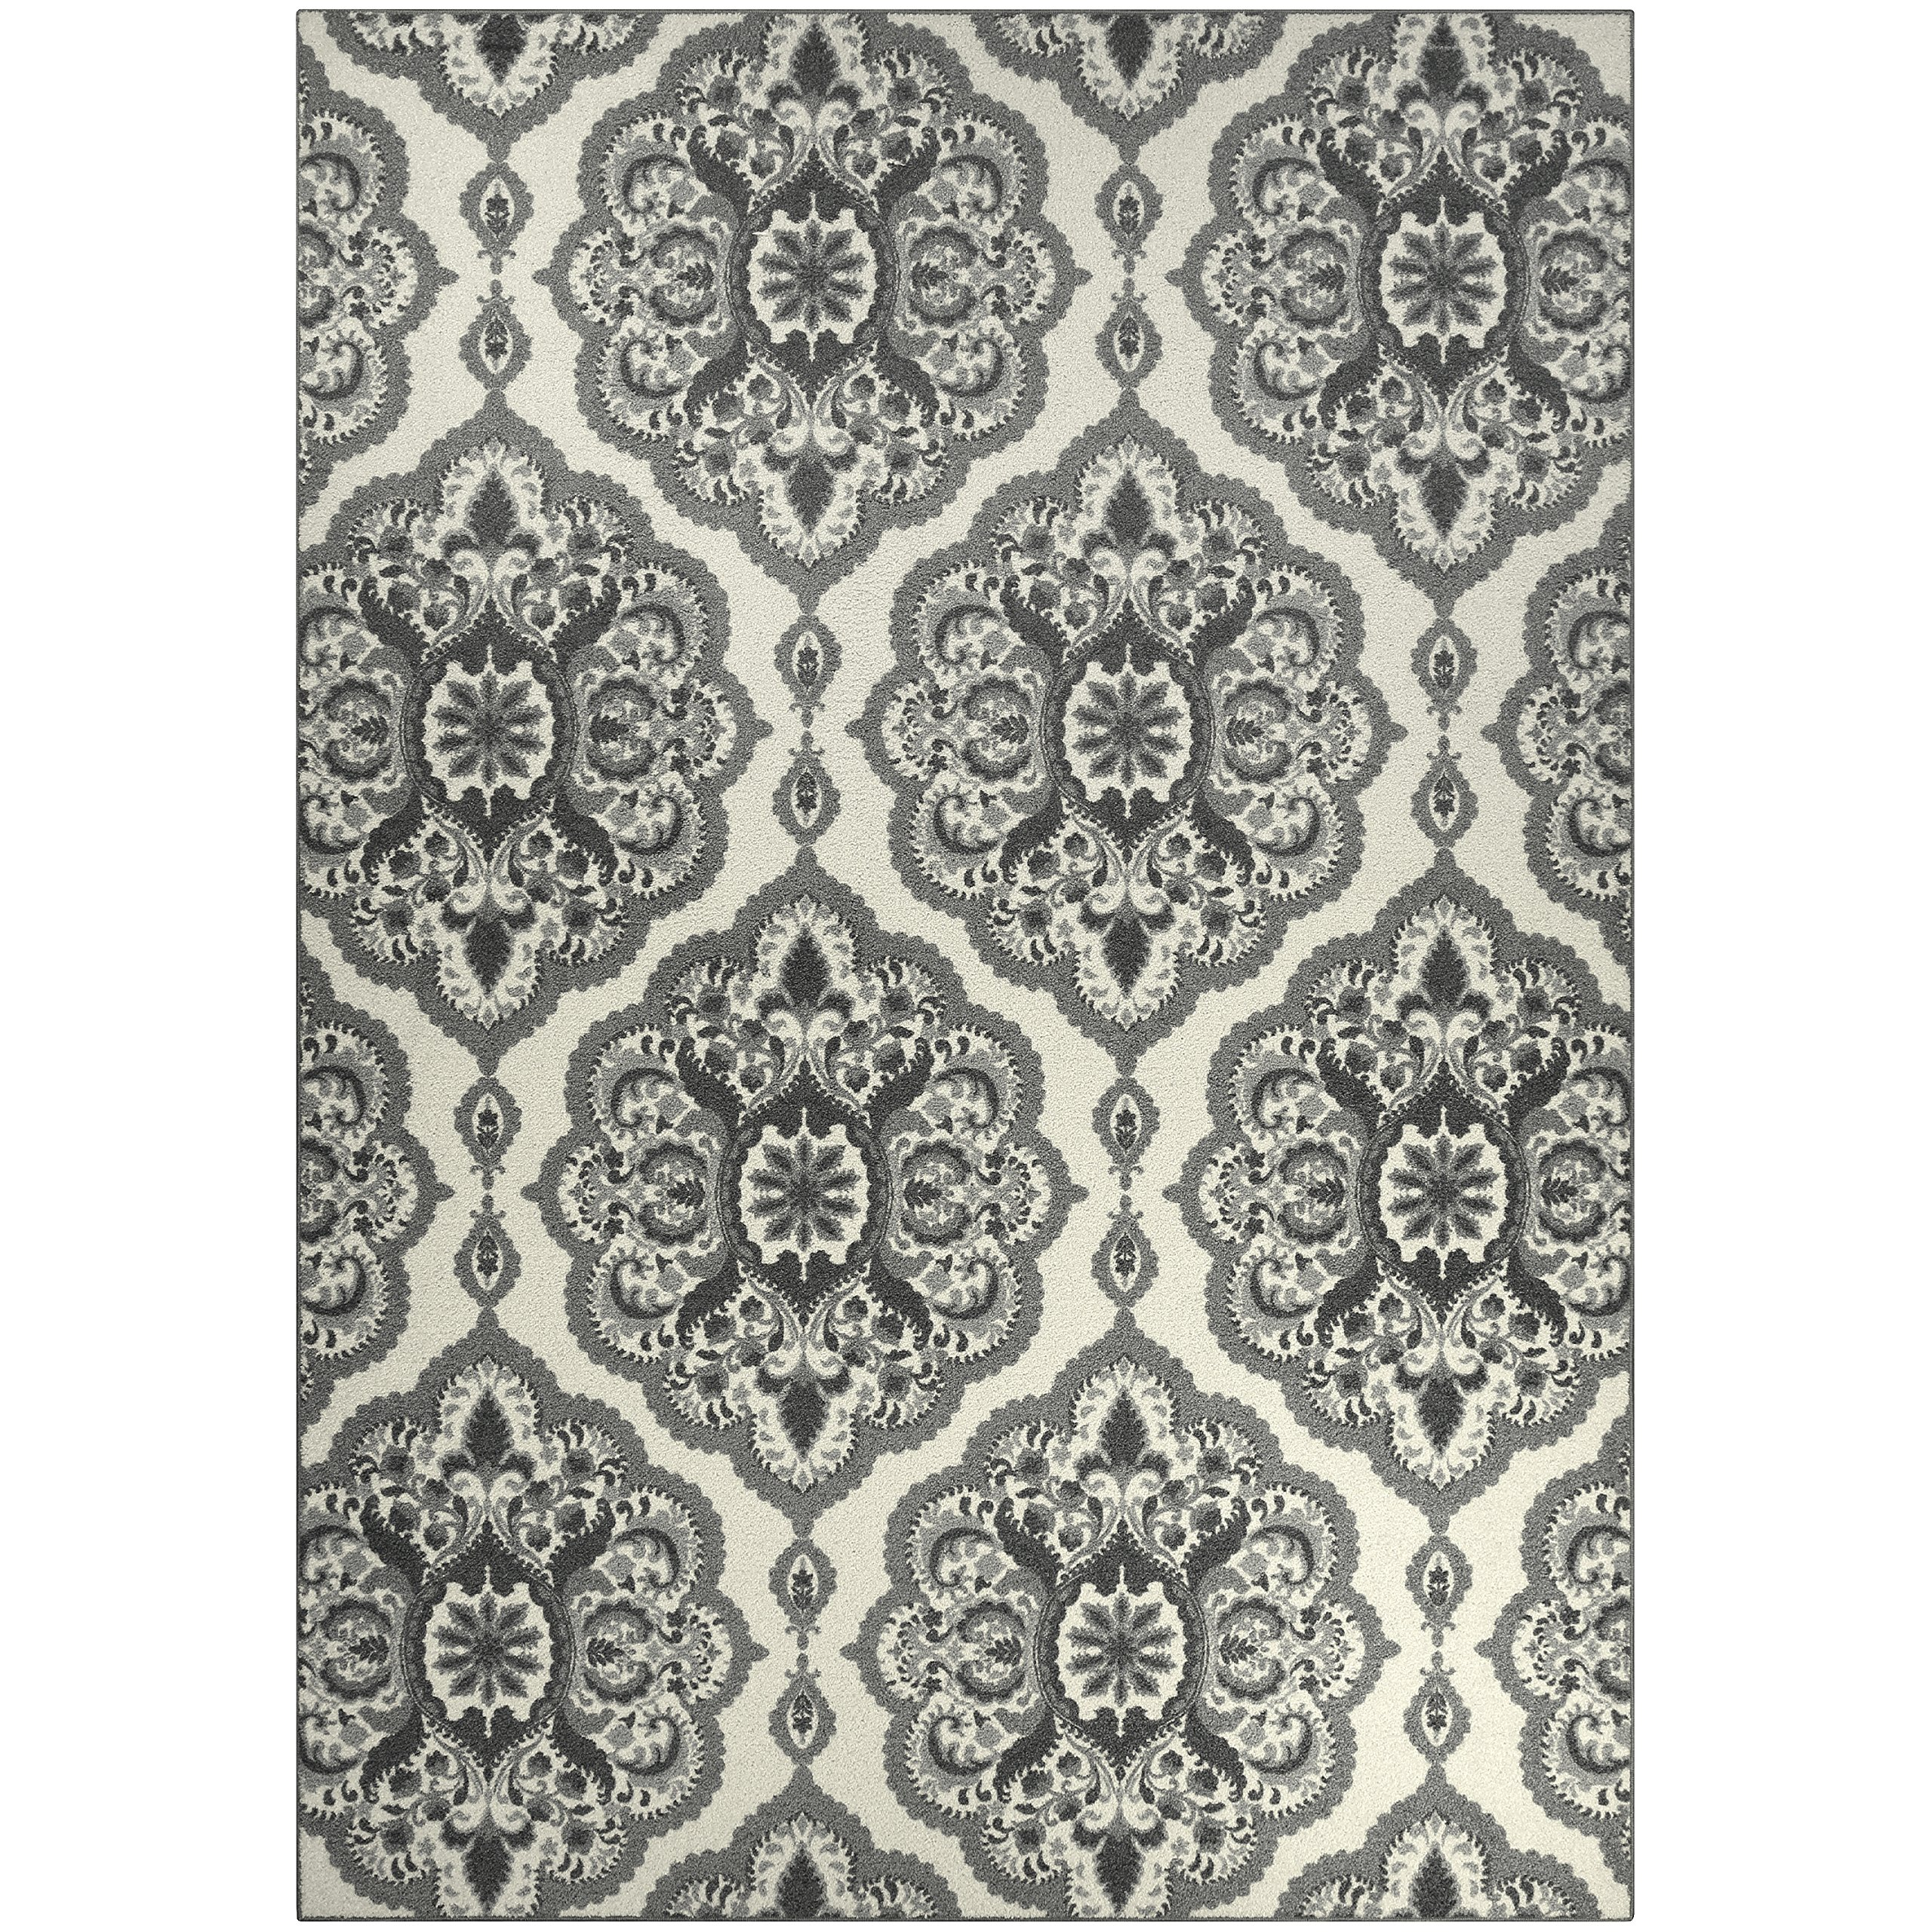 Area Rugs, Maples Rugs [Made in USA][Vivian] 7' x 10' Non Slip Padded Large Rug for Living Room, Bedroom, and Dining Room - Grey